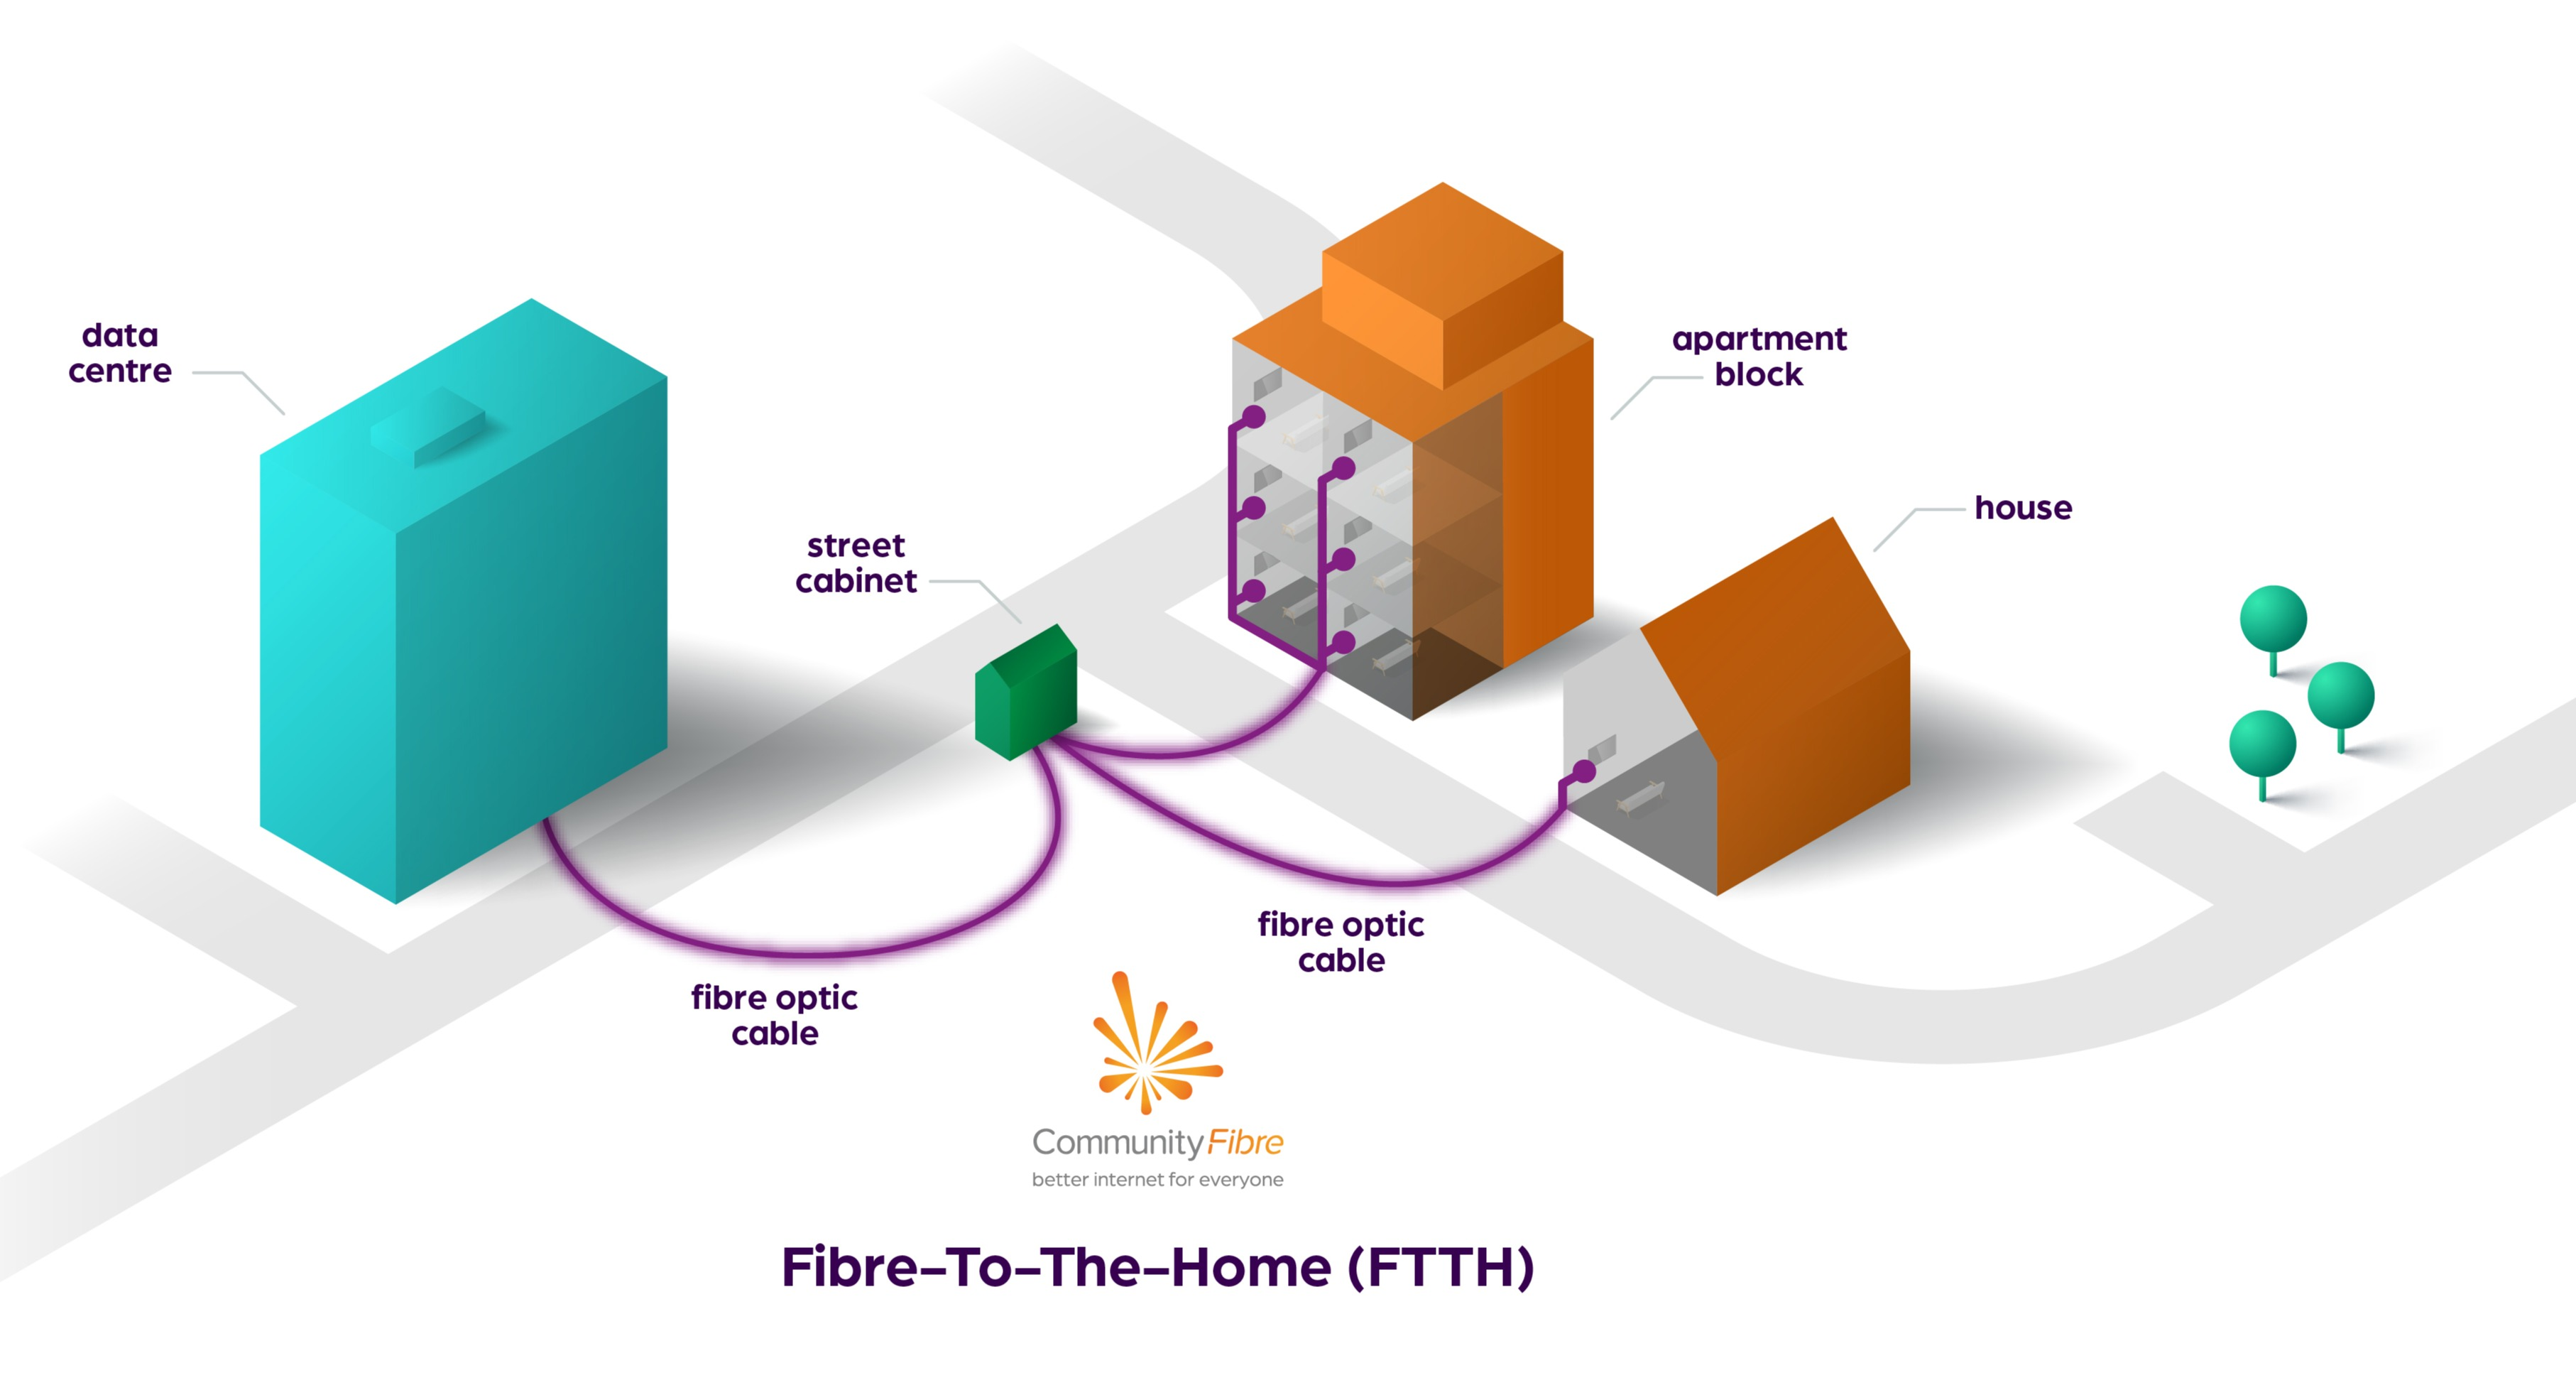 ftth_explanation